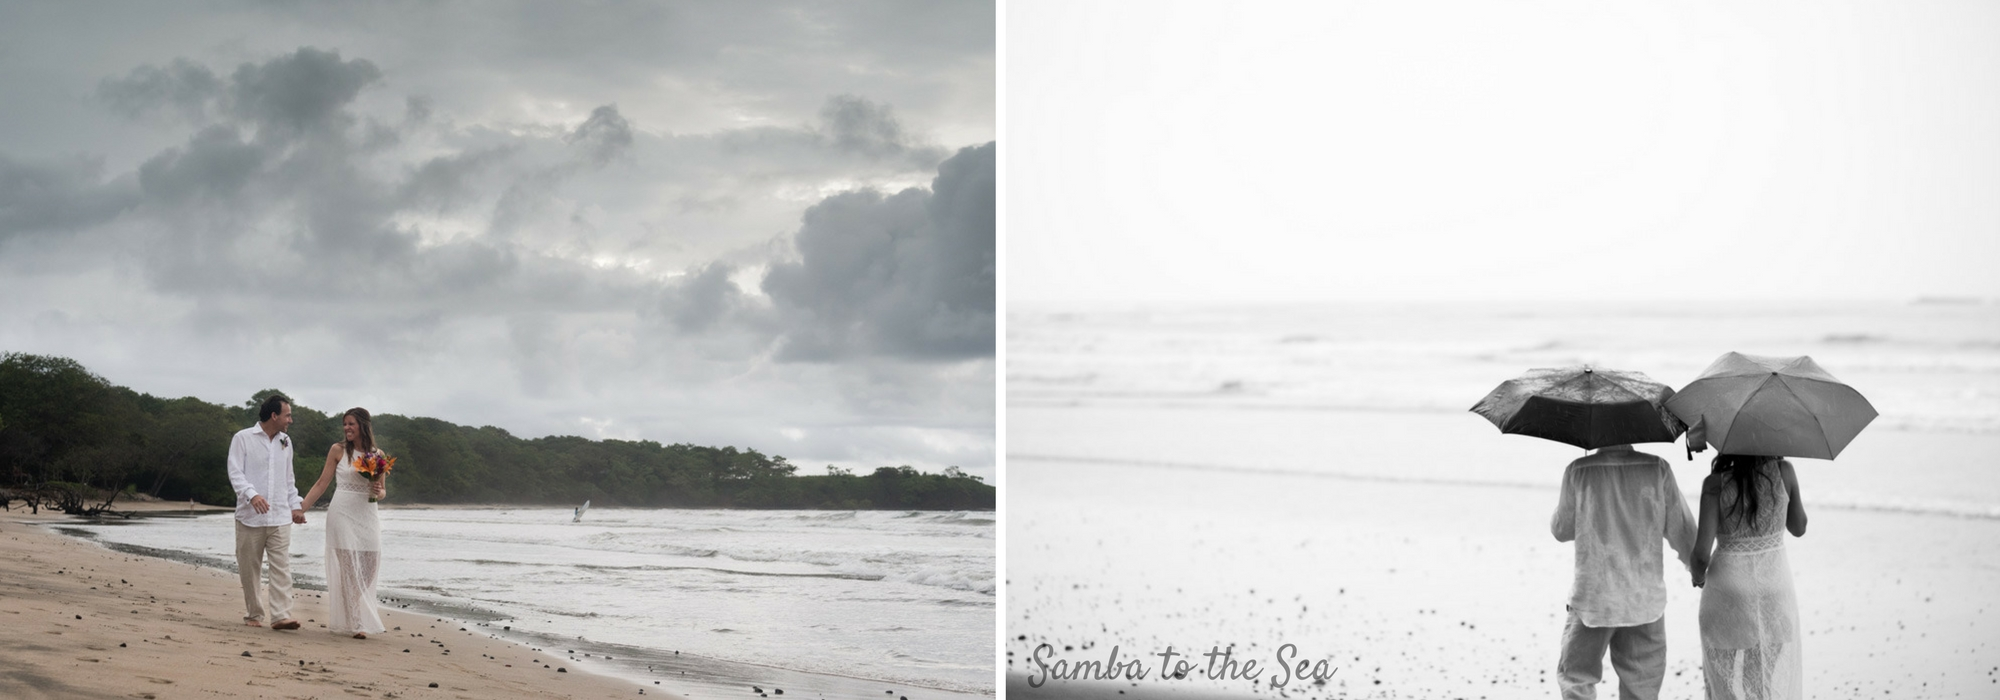 Couple walking on the beach in the rain after their elopement in Costa Rica. Photographed by Kristen M. Brown, Samba to the Sea Photography.